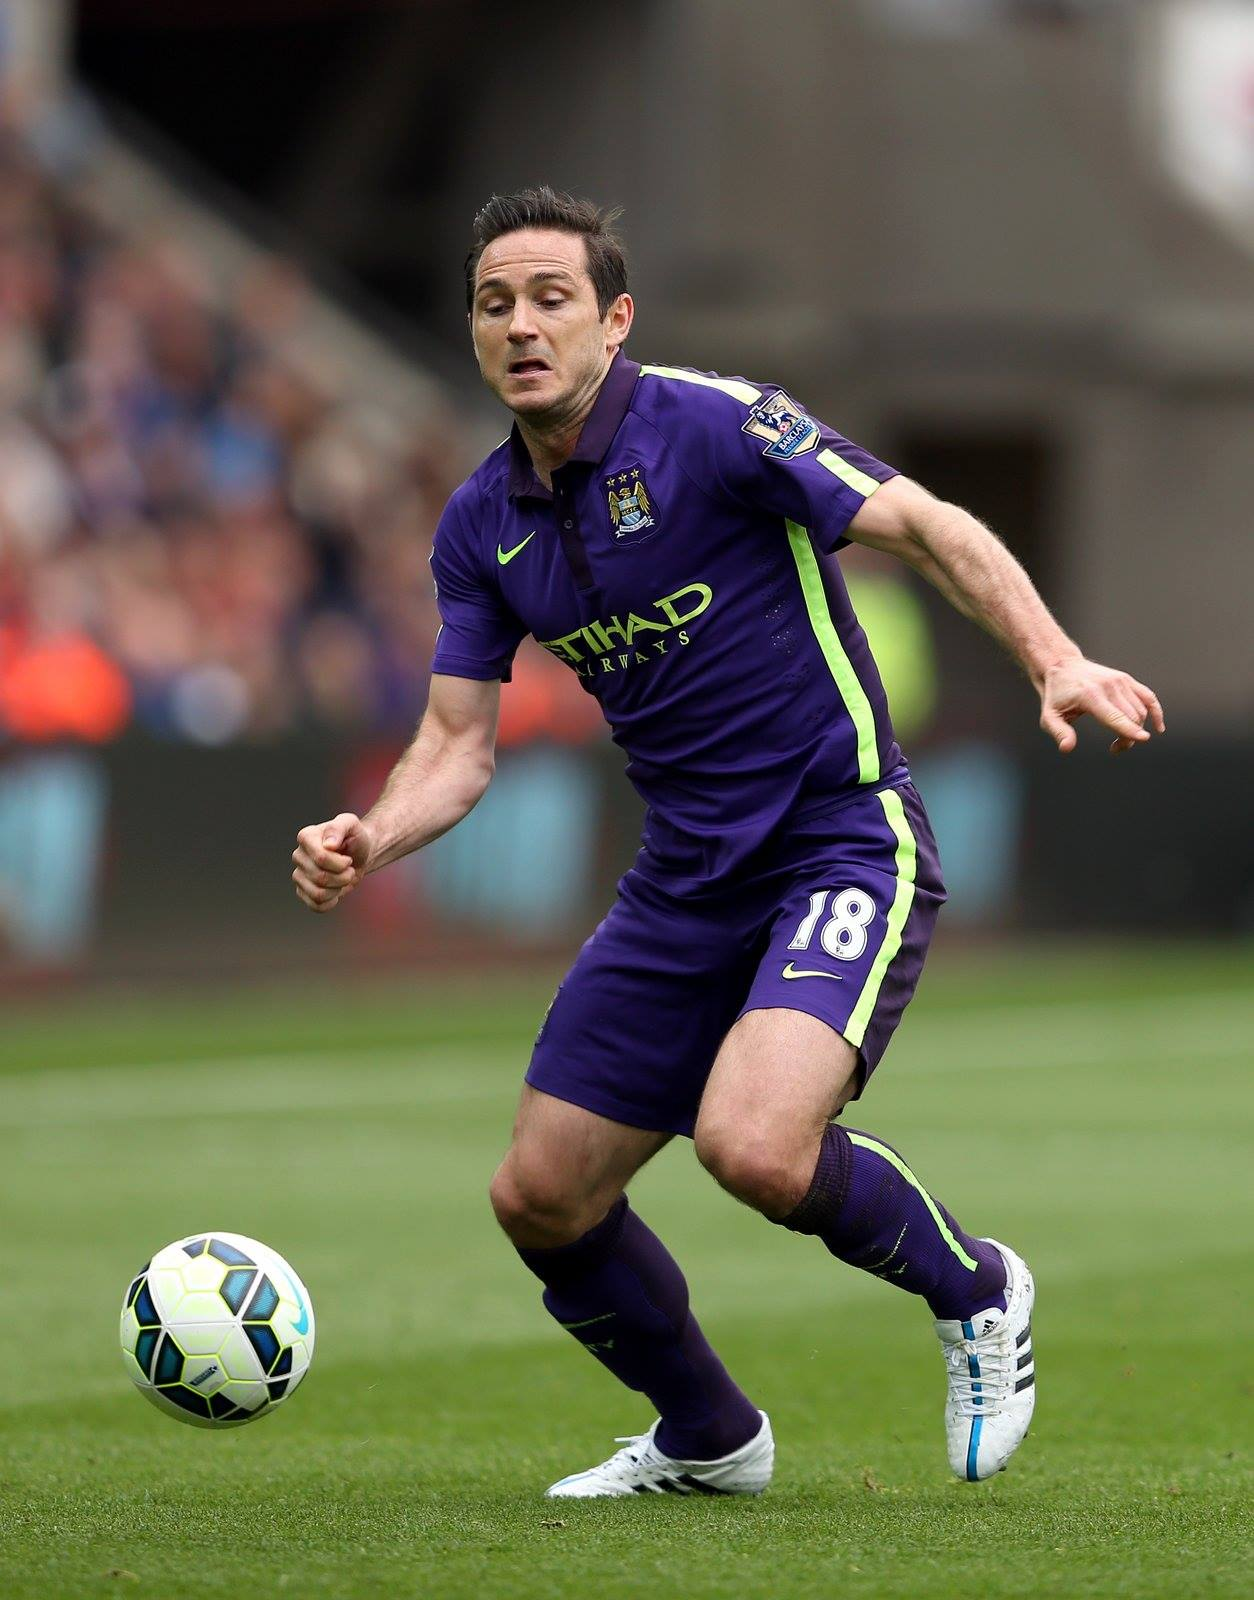 Take a bow - Super Frankie will leave English football on Sunday - let's hope City give Lamps a suitable send off. Courtesy@MCFC